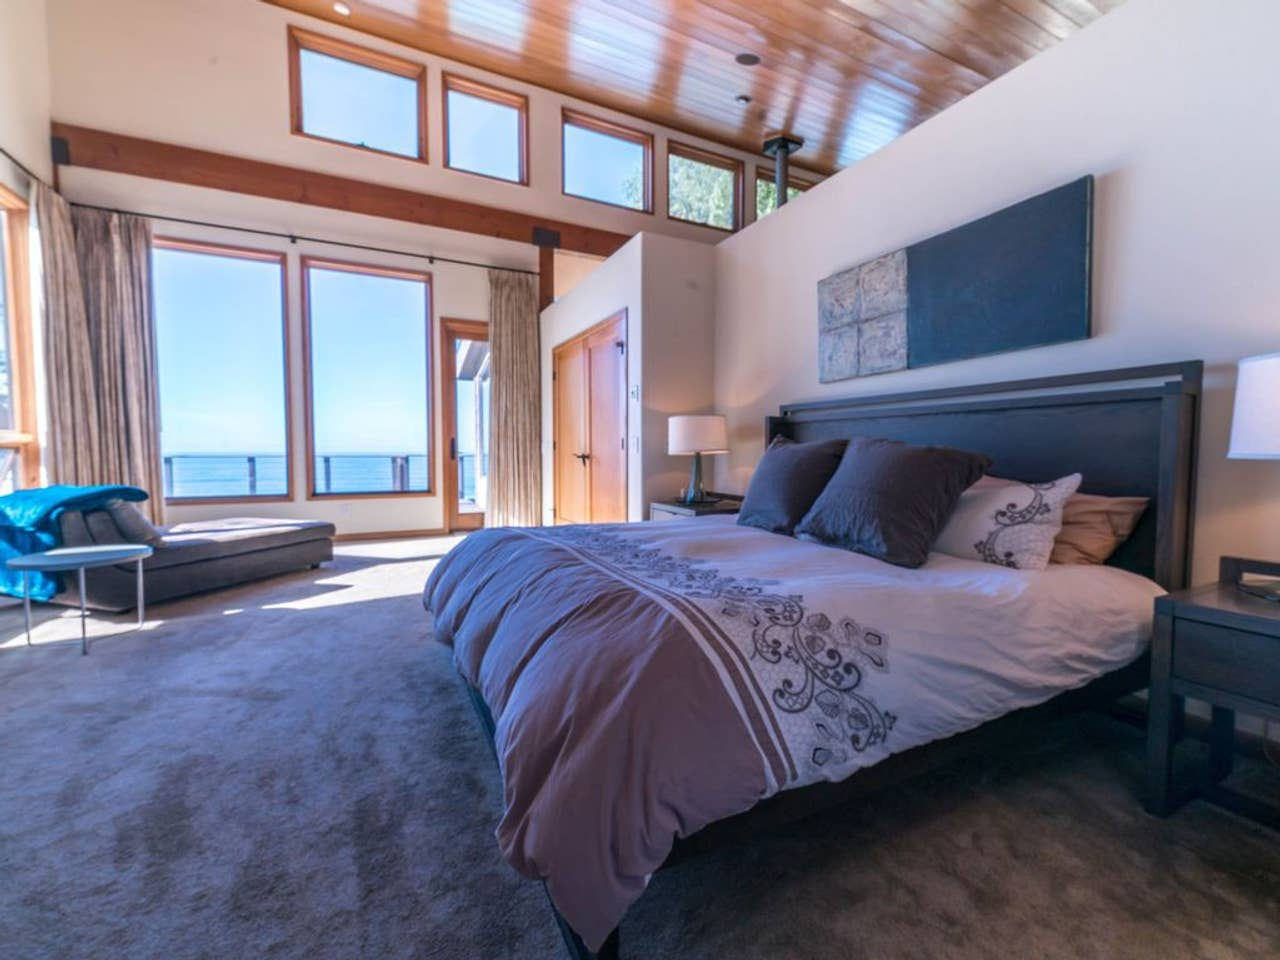 Shared King Bed + Twin Suite features huge windows and ocean views.